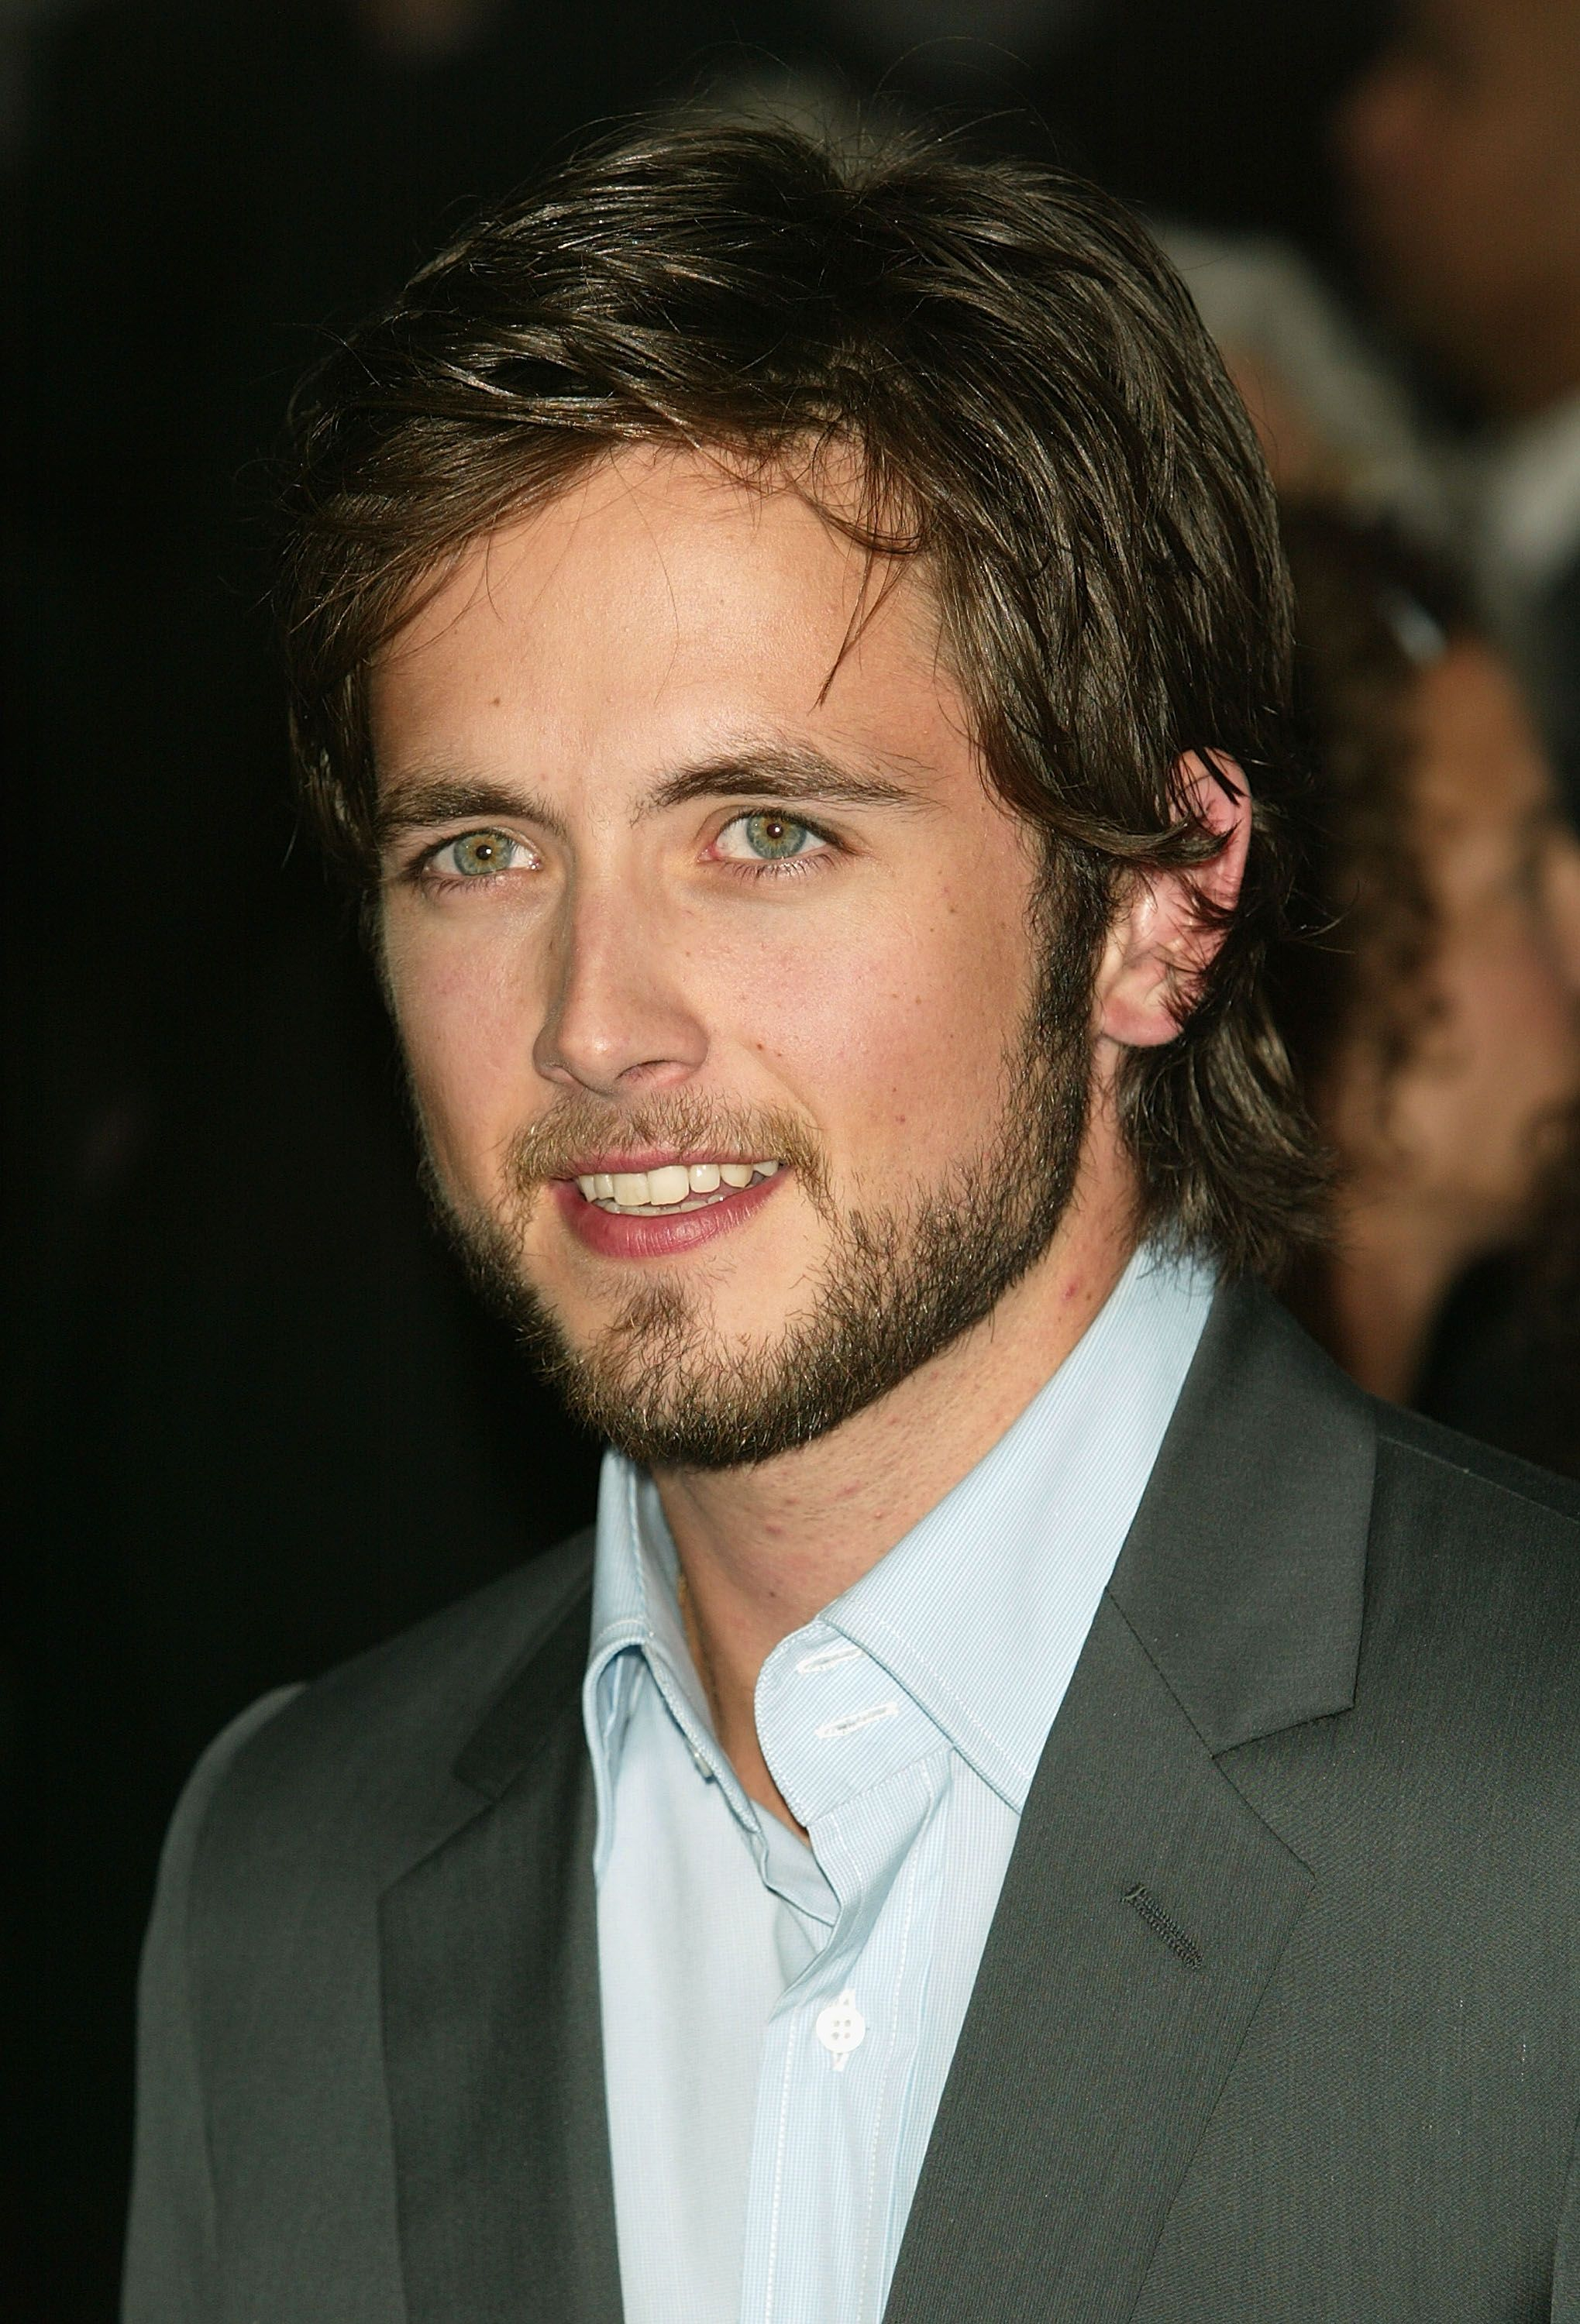 justin chatwin youngjustin chatwin lost, justin chatwin tumblr, justin chatwin фильмография, justin chatwin кинопоиск, justin chatwin young, justin chatwin smallville, justin chatwin wdw, justin chatwin hairstyle, justin chatwin photoshoot, justin chatwin vs ryan eggold, justin chatwin and wife, justin chatwin facebook, justin chatwin instagram, justin chatwin doctor who, justin chatwin twitter, justin chatwin war of the worlds, justin chatwin height, justin chatwin interview, justin chatwin vikings, justin chatwin billie joe armstrong